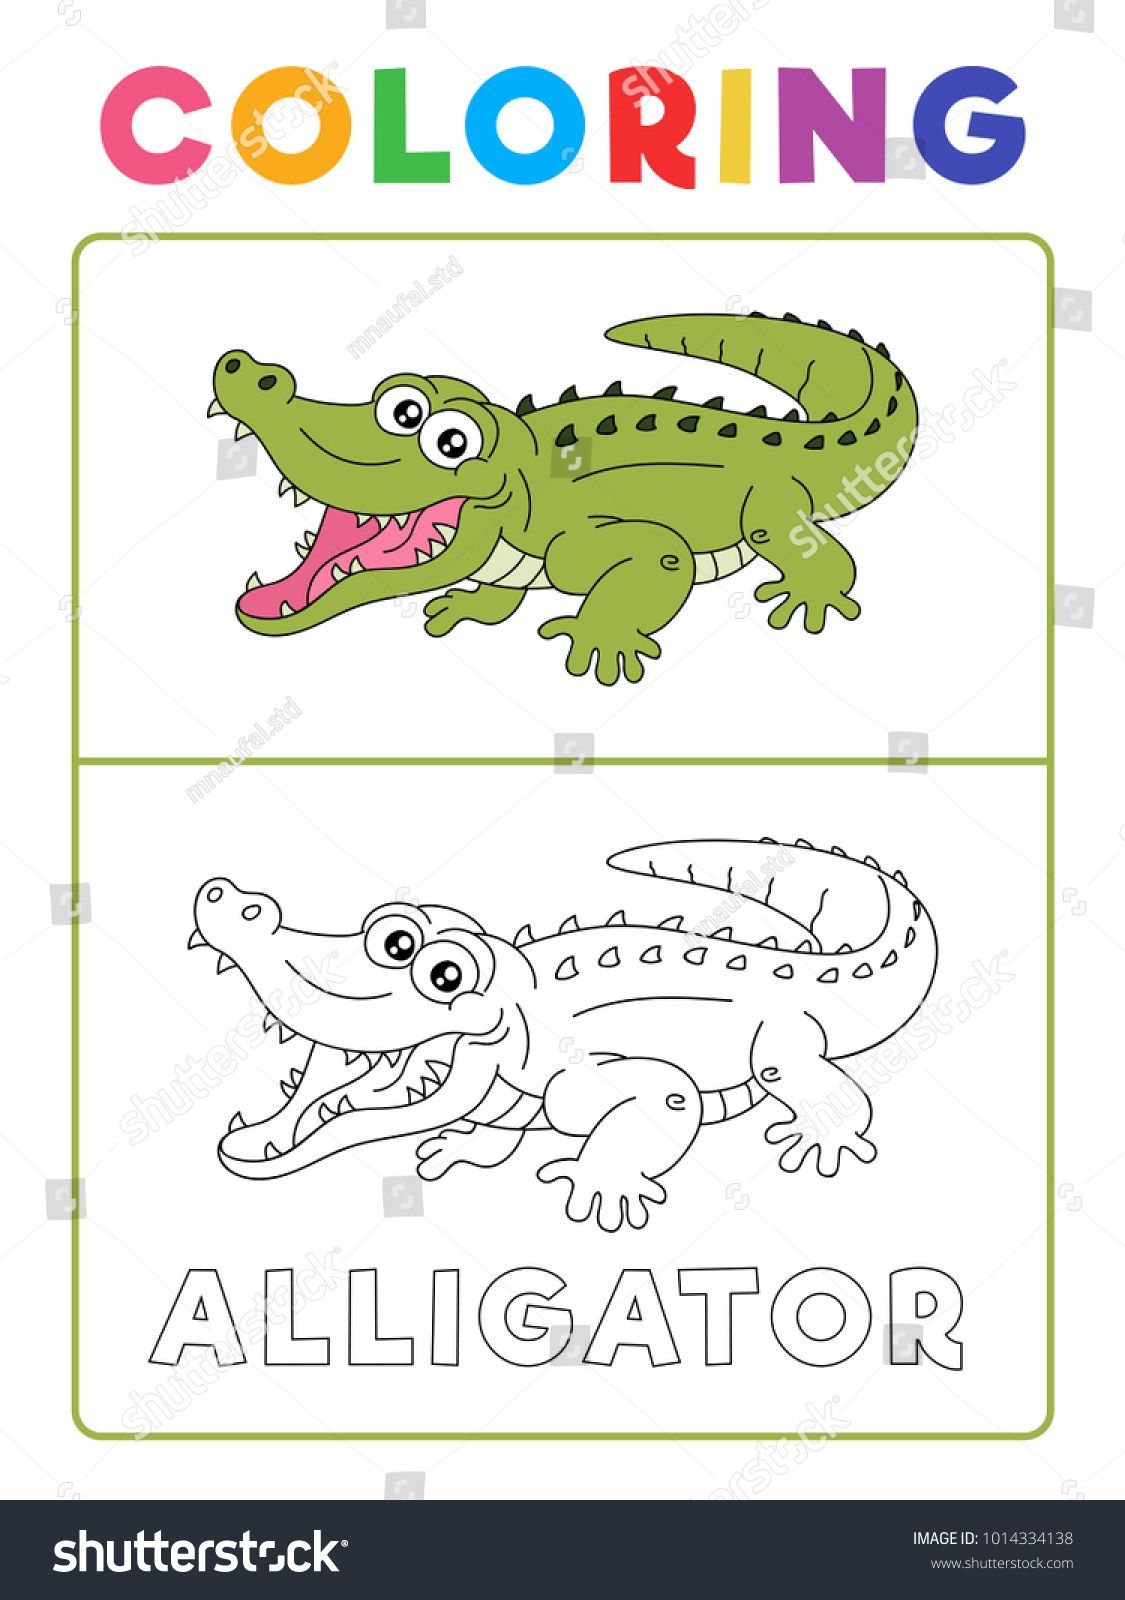 Funny Alligator Crocodile Animal Coloring Book Stock Vector (Royalty ...